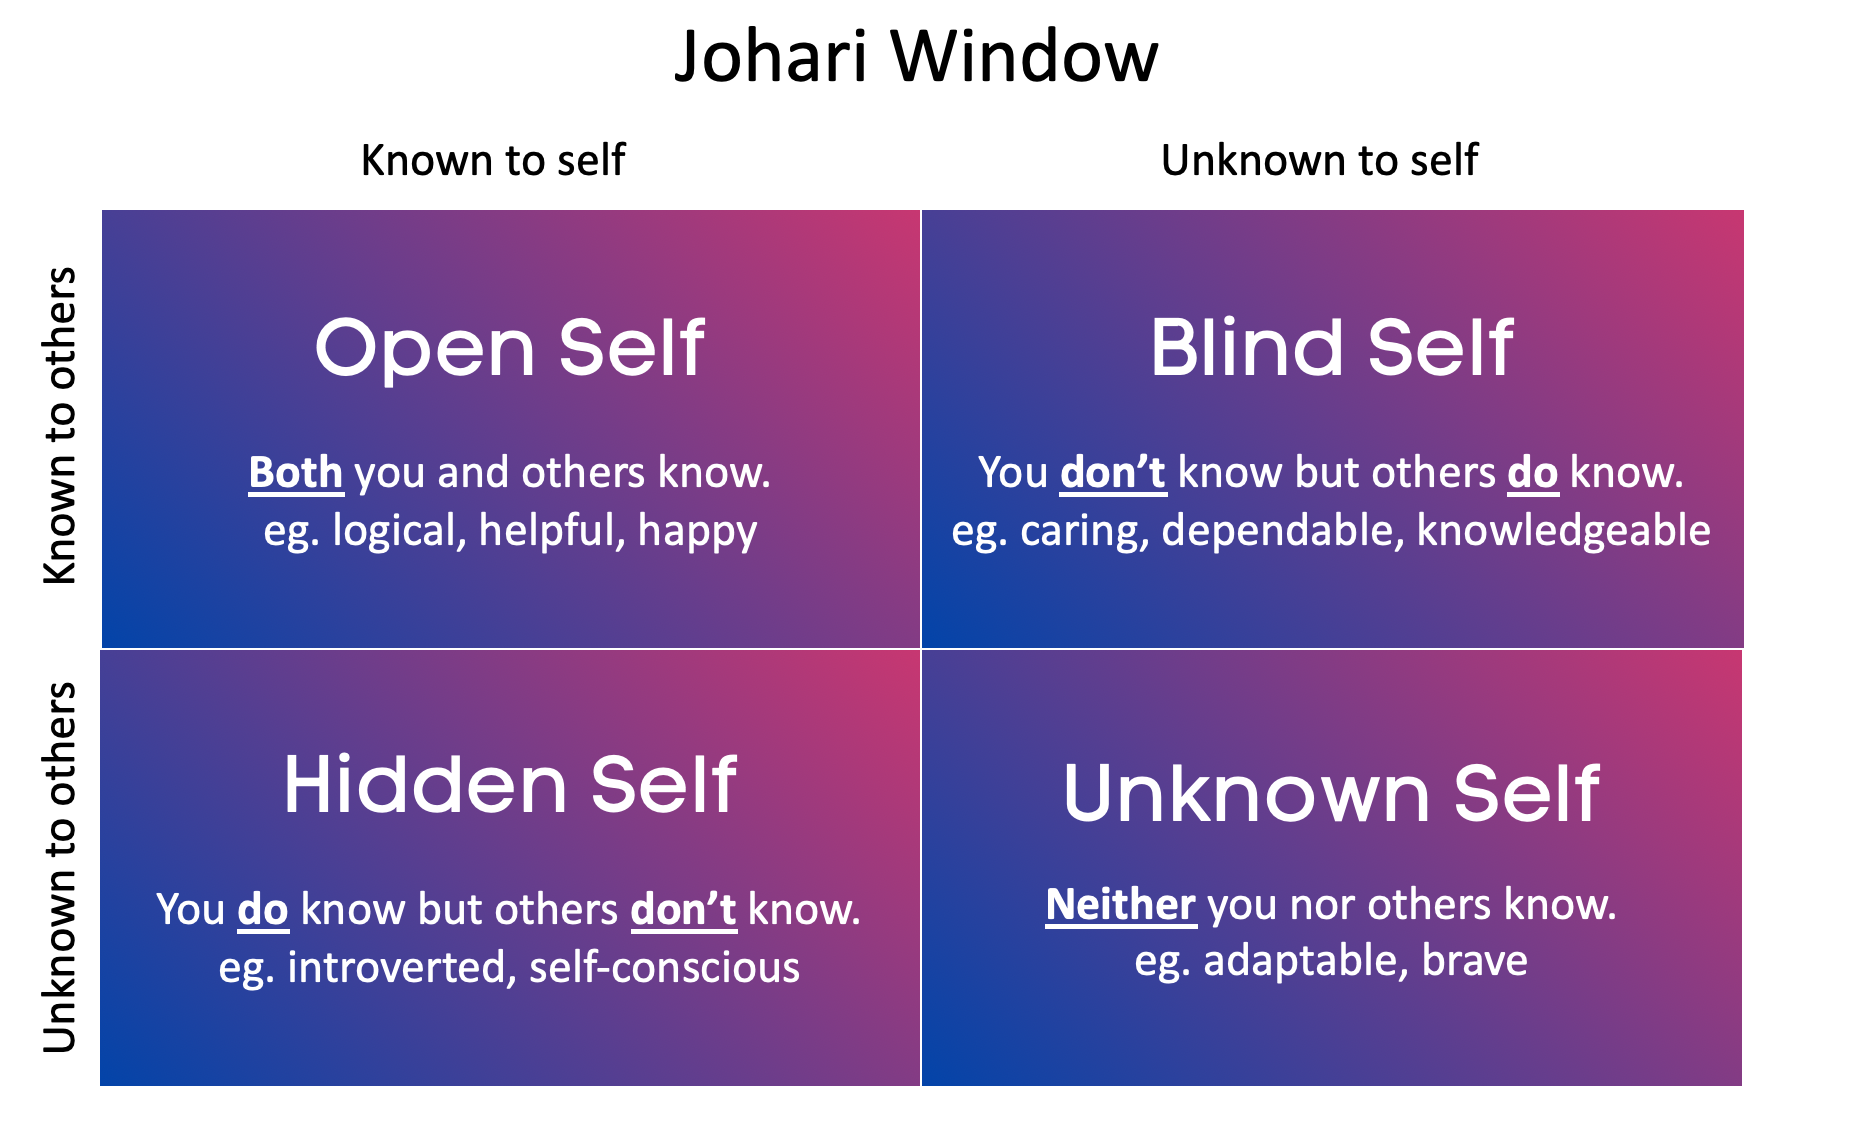 Johari Window with the 4 categories: open self, hidden self, blind self and unknown self.